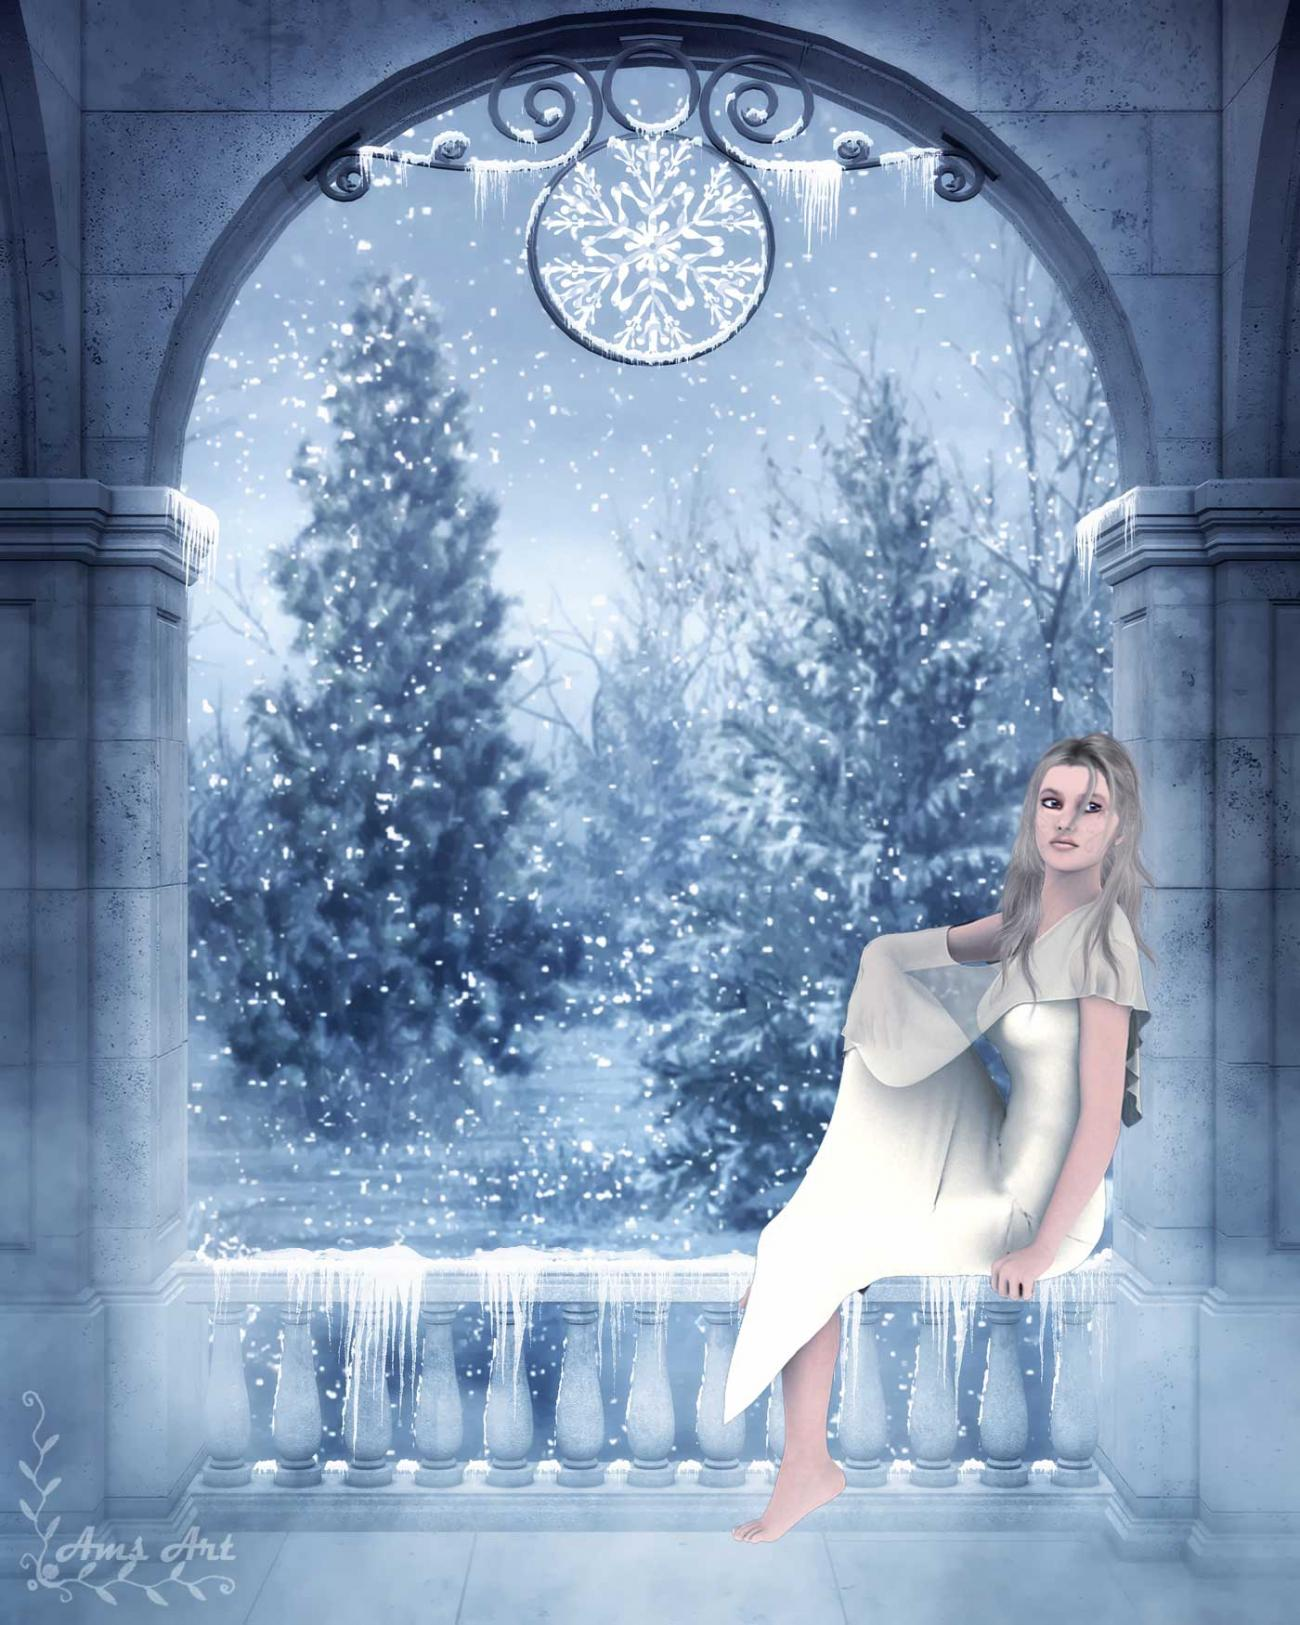 ilona wallpapers beautiful snowy -#main